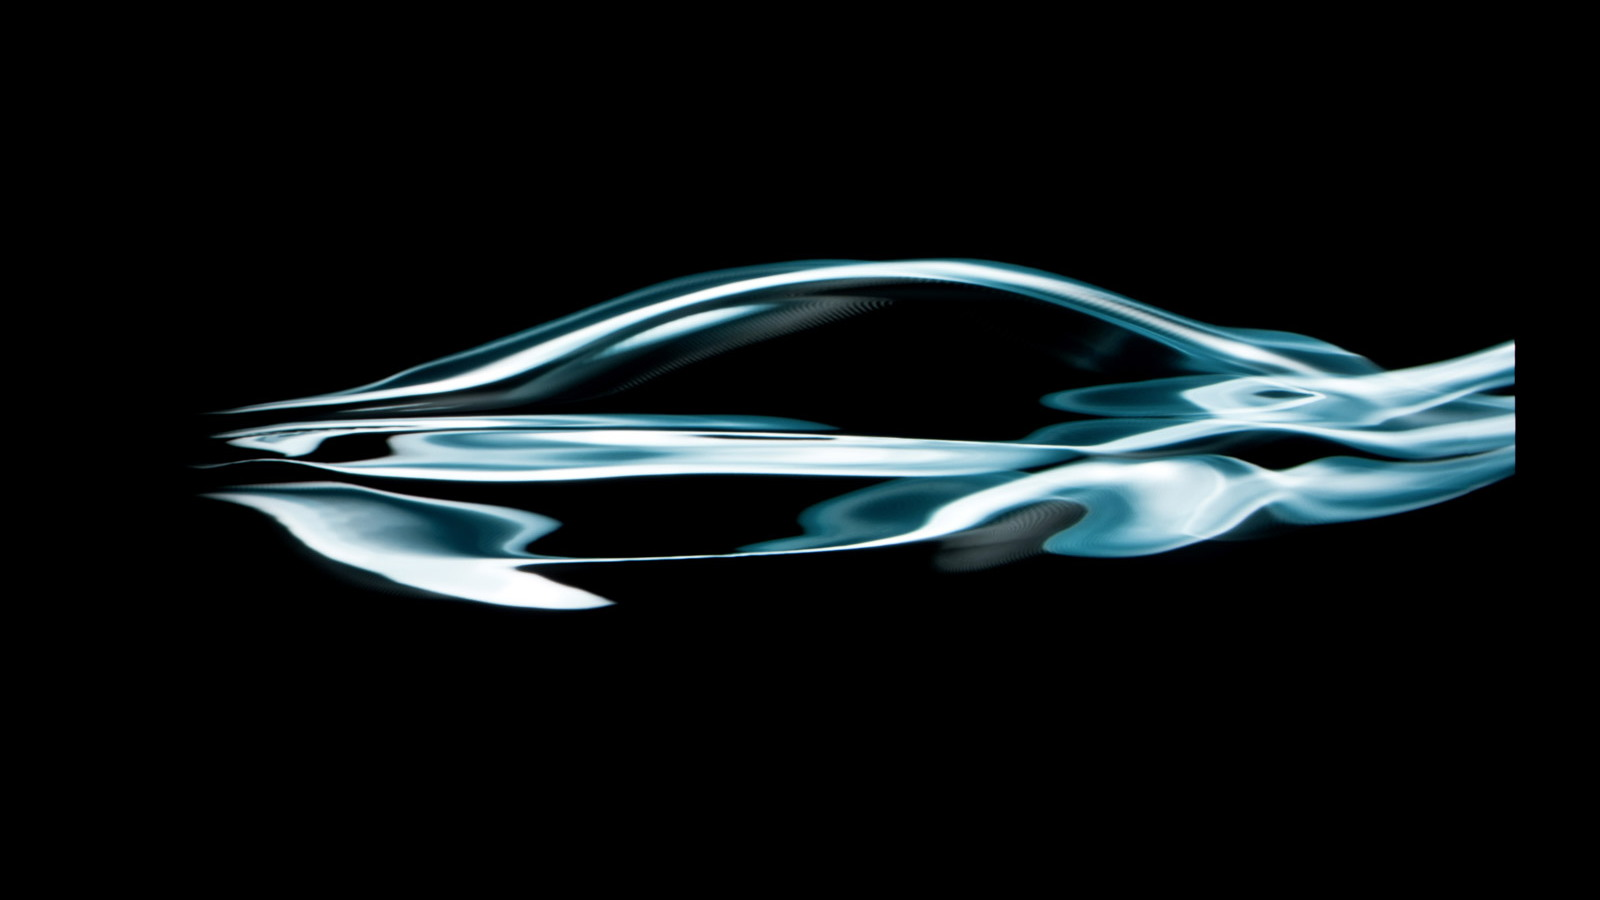 Mercedes-Benz 'Aesthetics S' sculpture previews new 2014 S Class